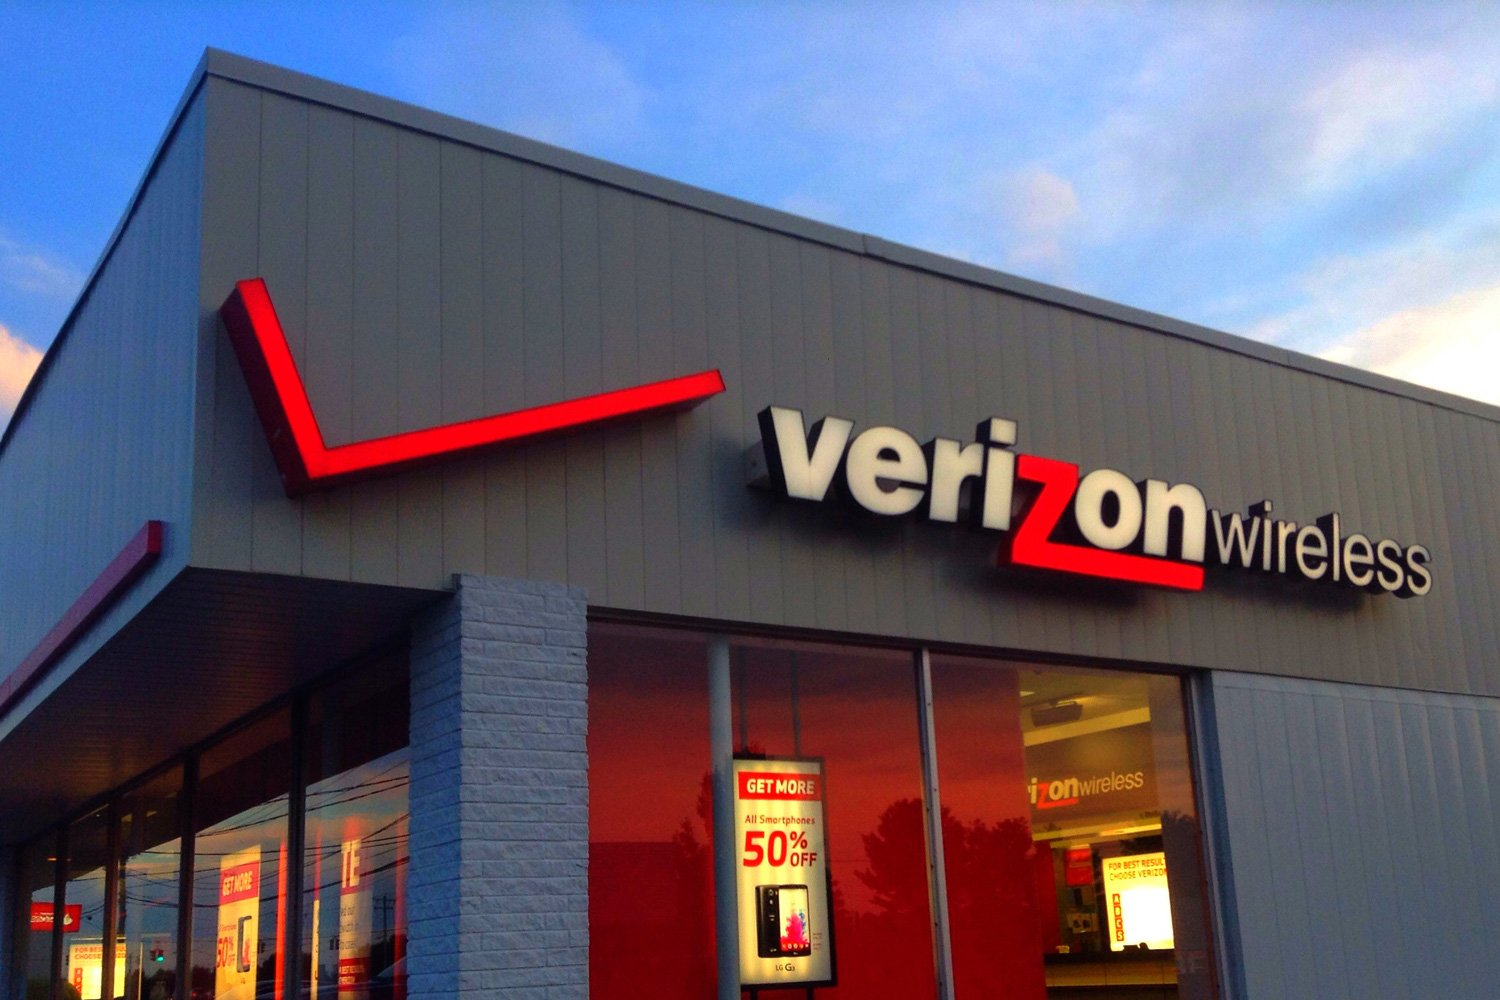 New Verizon Phones 2019 The best phones available at Verizon Wireless today (January 2019)